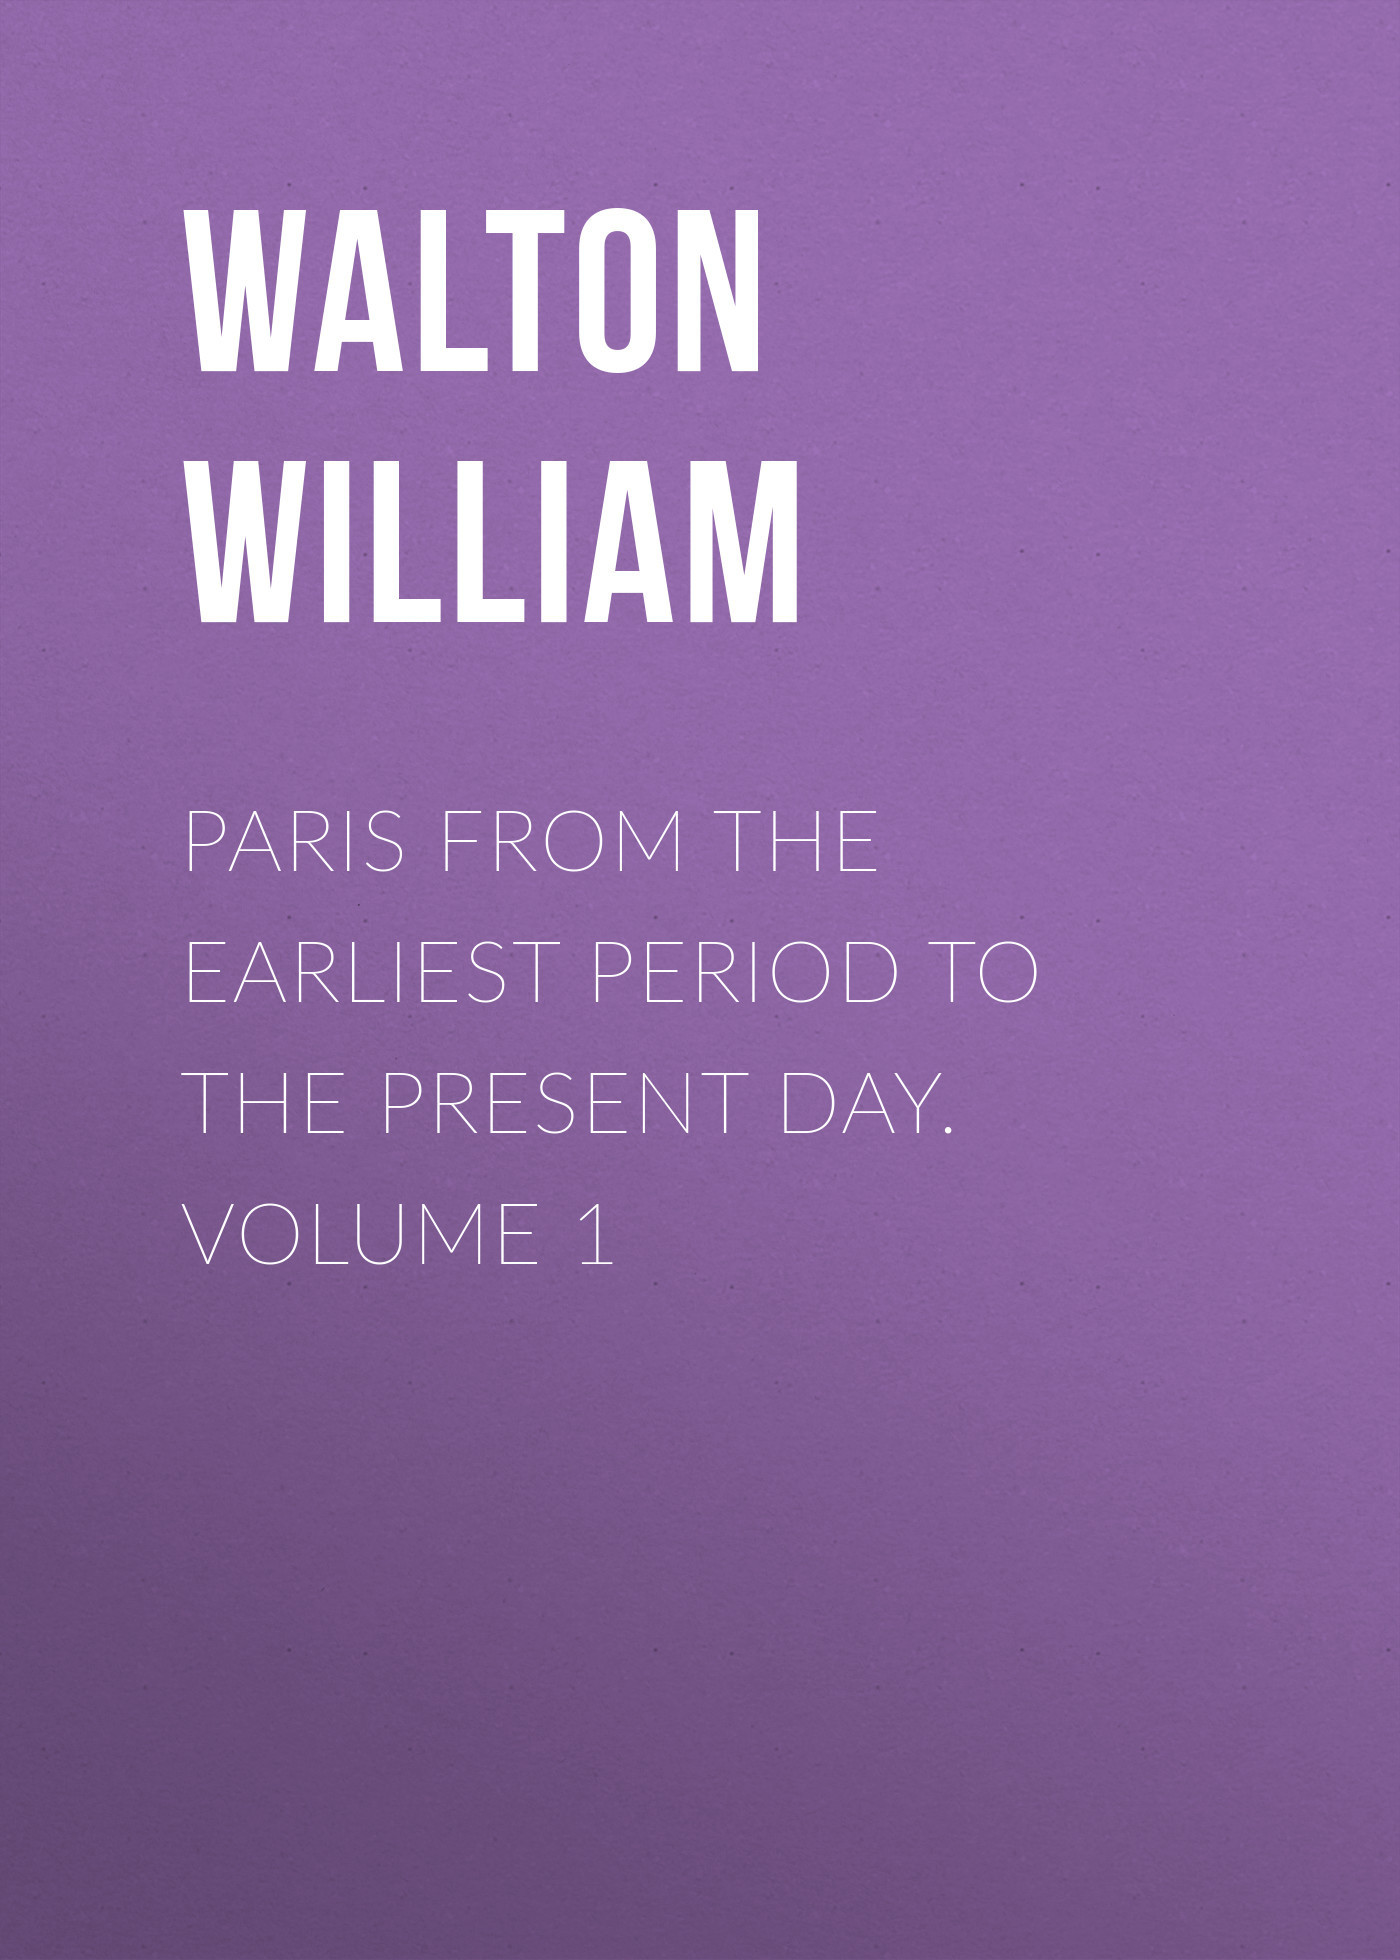 Walton William Paris from the Earliest Period to the Present Day. Volume 1